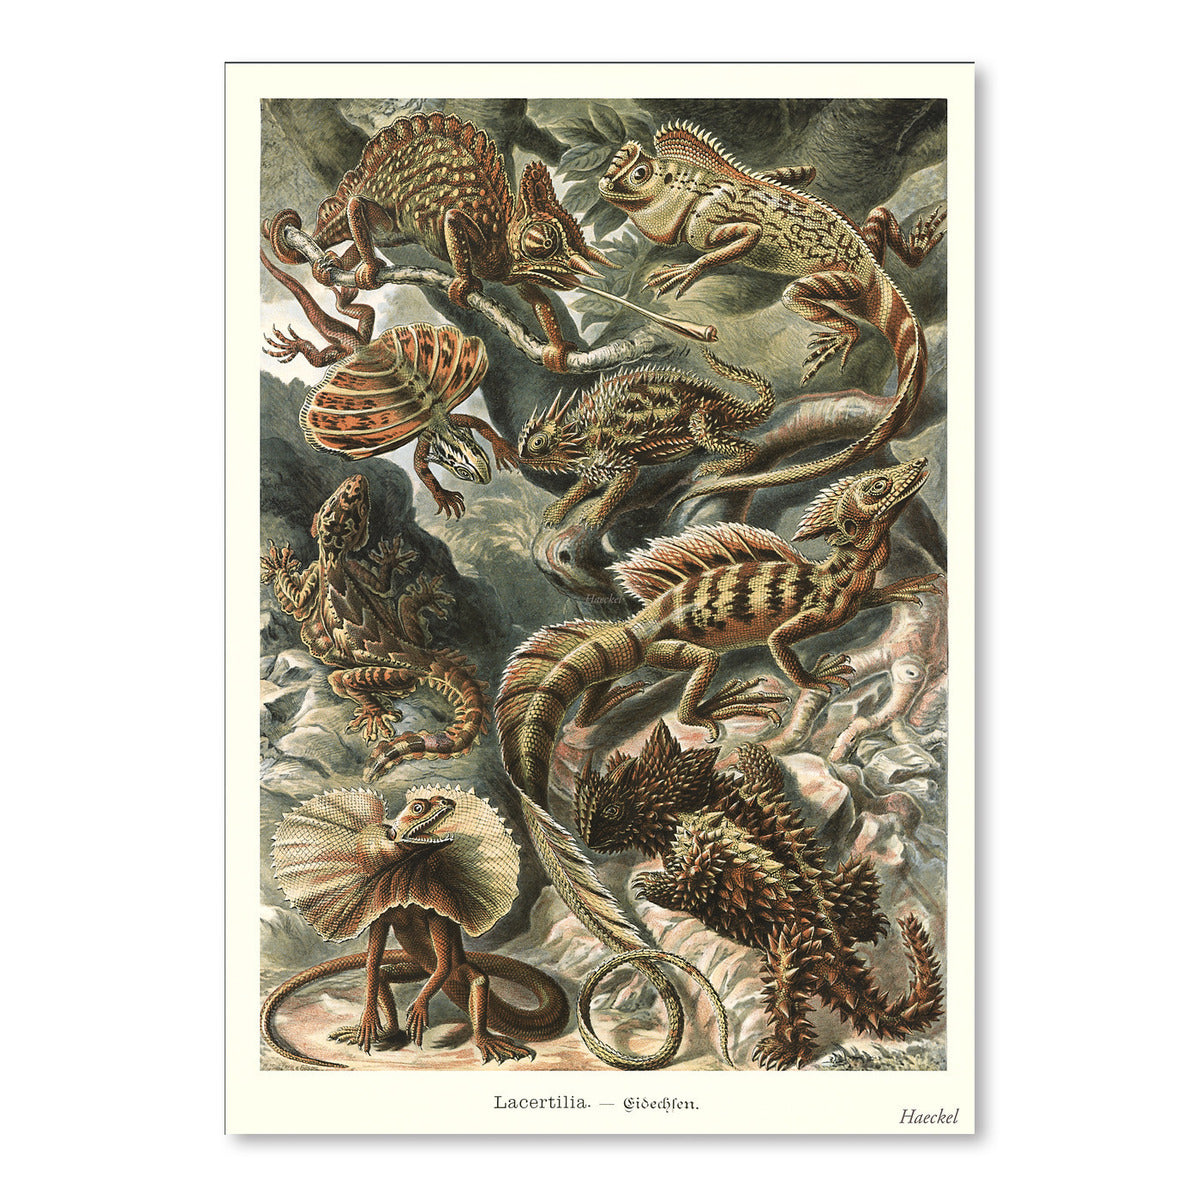 Lizards by Found Image Press Art Print - Art Print - Americanflat